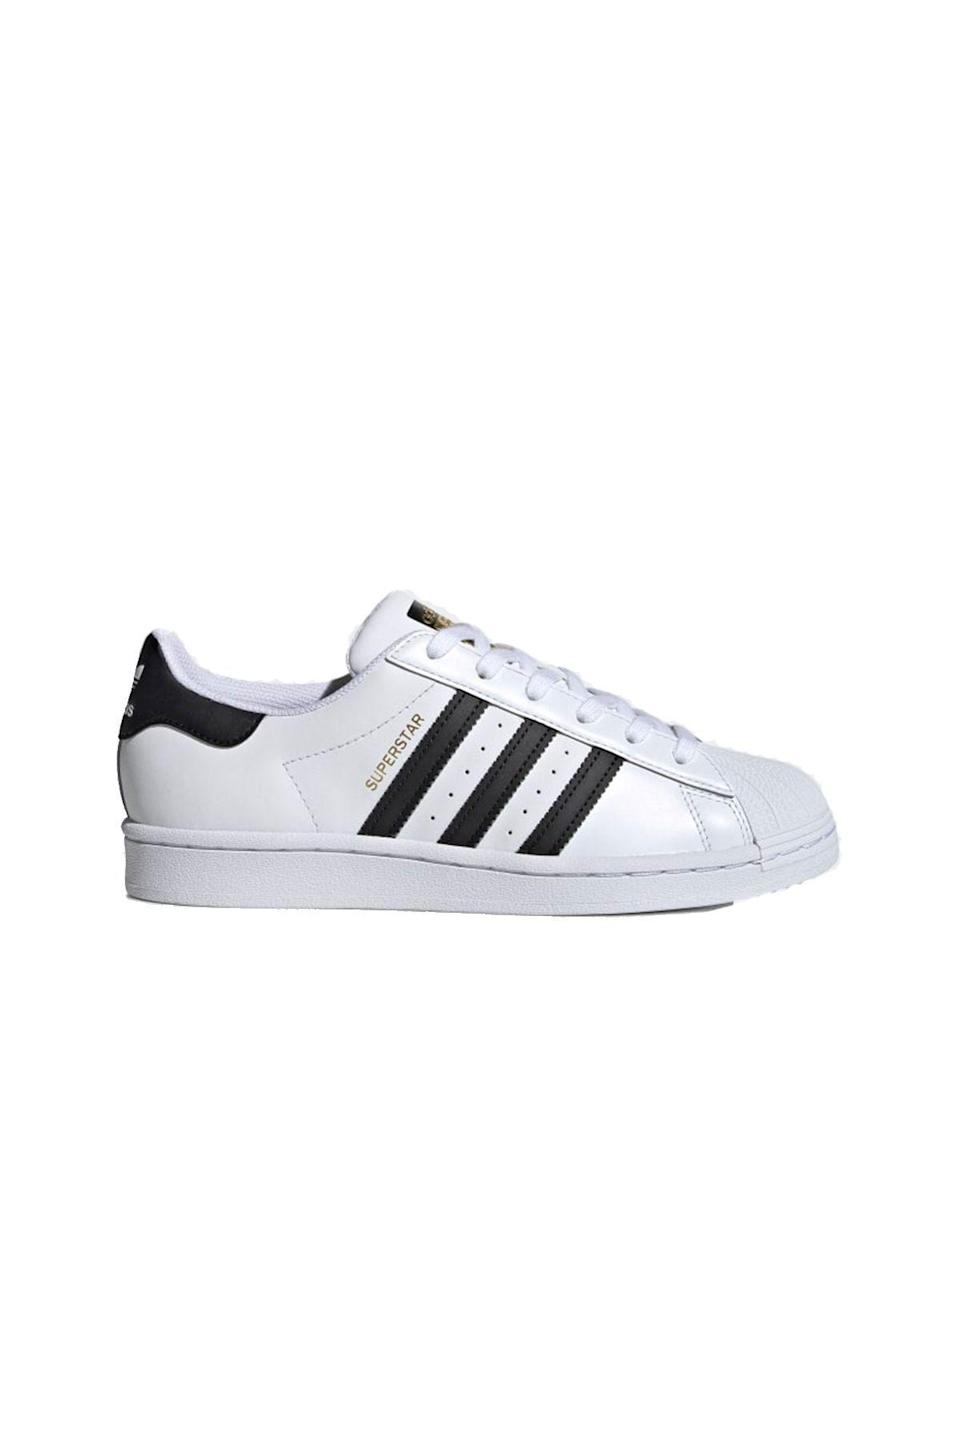 """<p><strong>Adidas</strong></p><p>adidas.com</p><p><strong>$85.00</strong></p><p><a href=""""https://go.redirectingat.com?id=74968X1596630&url=https%3A%2F%2Fwww.adidas.com%2Fus%2Fsuperstar-shoes%2FFV3284.html&sref=https%3A%2F%2Fwww.townandcountrymag.com%2Fstyle%2Ffashion-trends%2Fg22576837%2Ffall-outfits%2F"""" rel=""""nofollow noopener"""" target=""""_blank"""" data-ylk=""""slk:Shop Now"""" class=""""link rapid-noclick-resp"""">Shop Now</a></p>"""